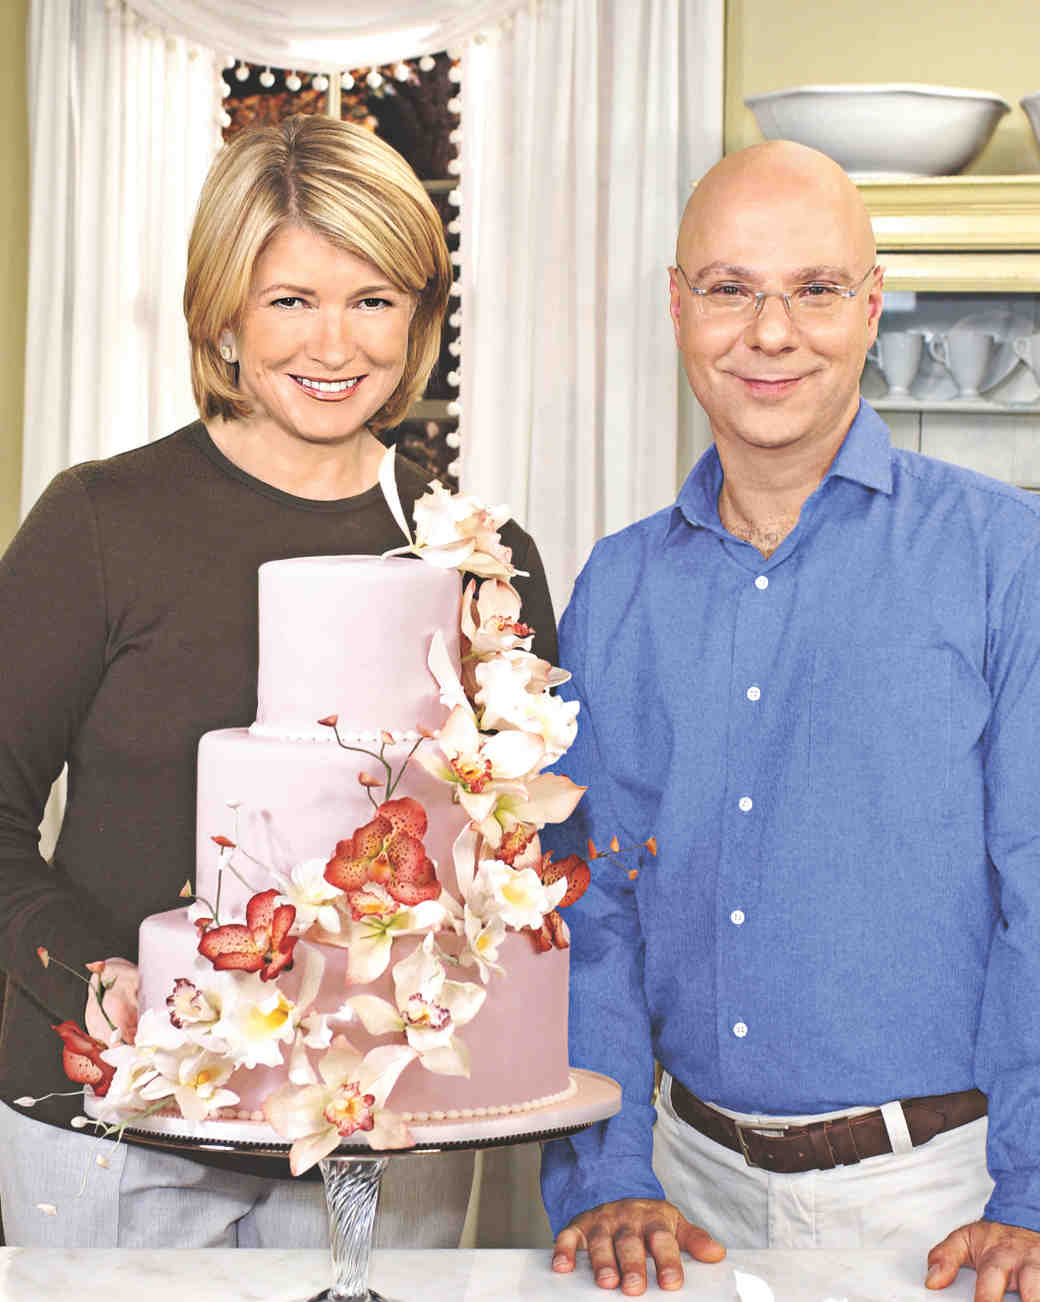 20 Years Of Gorgeous Wedding Cakes By Pastry Chef Ron Ben Israel